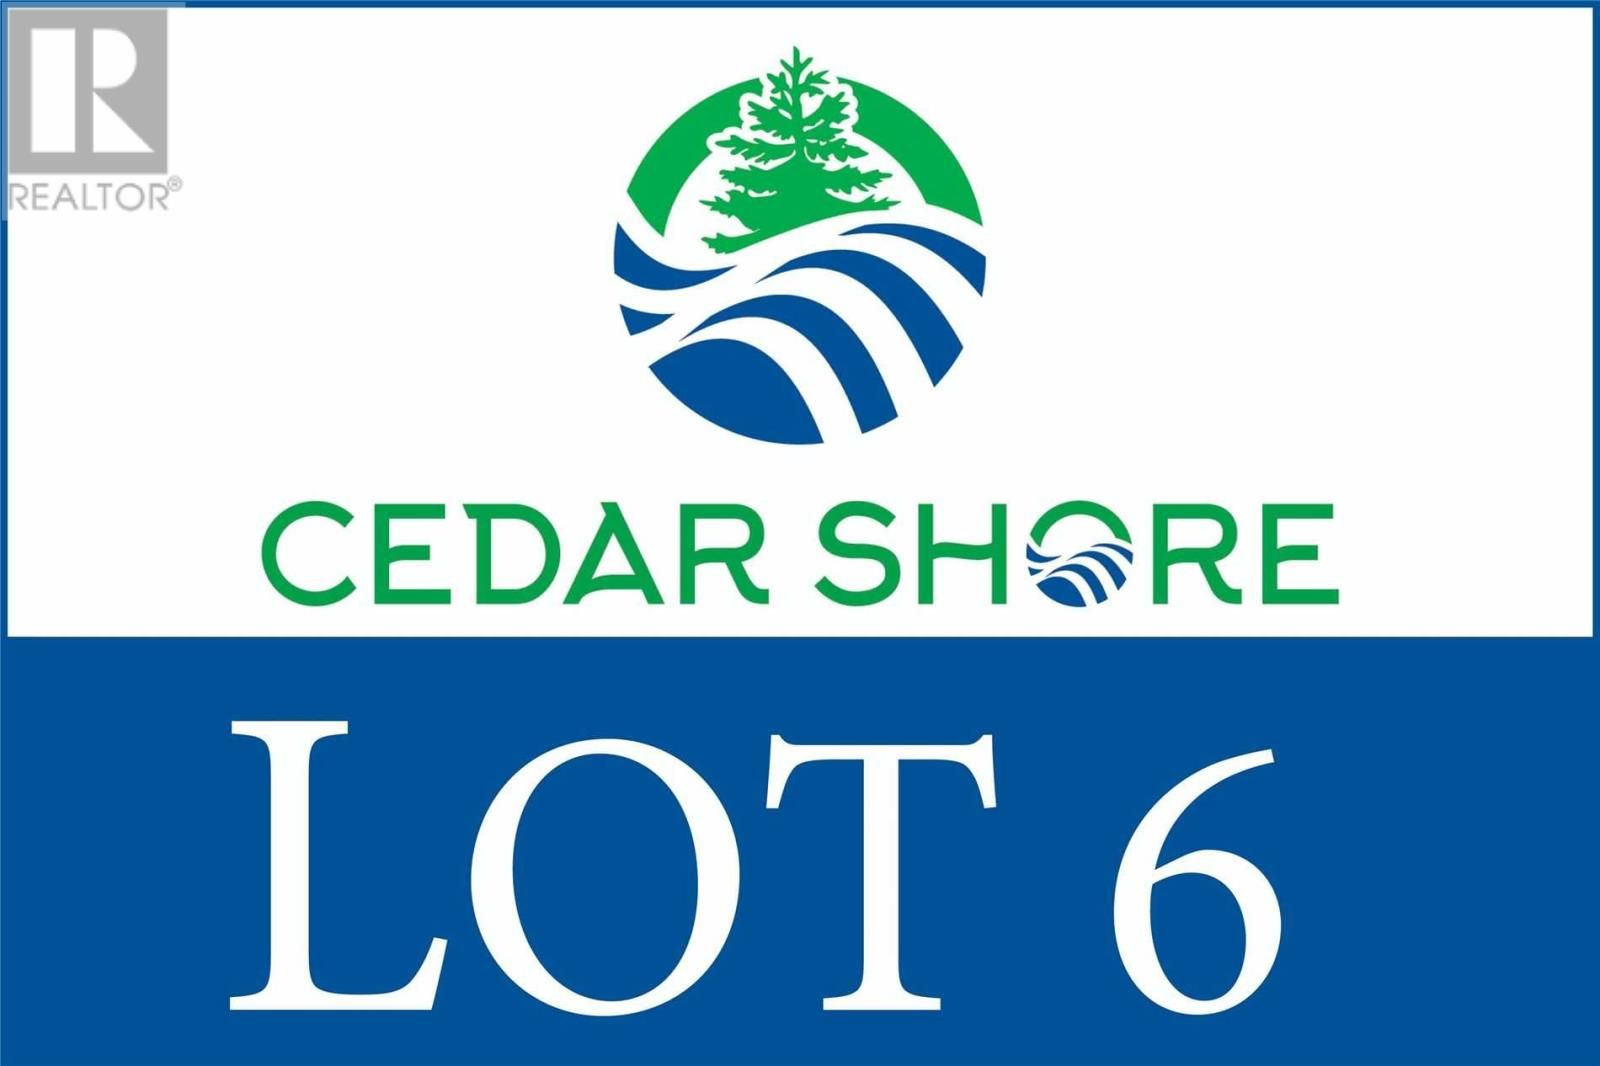 Main Photo: LOT 6 CEDAR SHORE TR in Cobourg: Vacant Land for sale : MLS®# X5382900